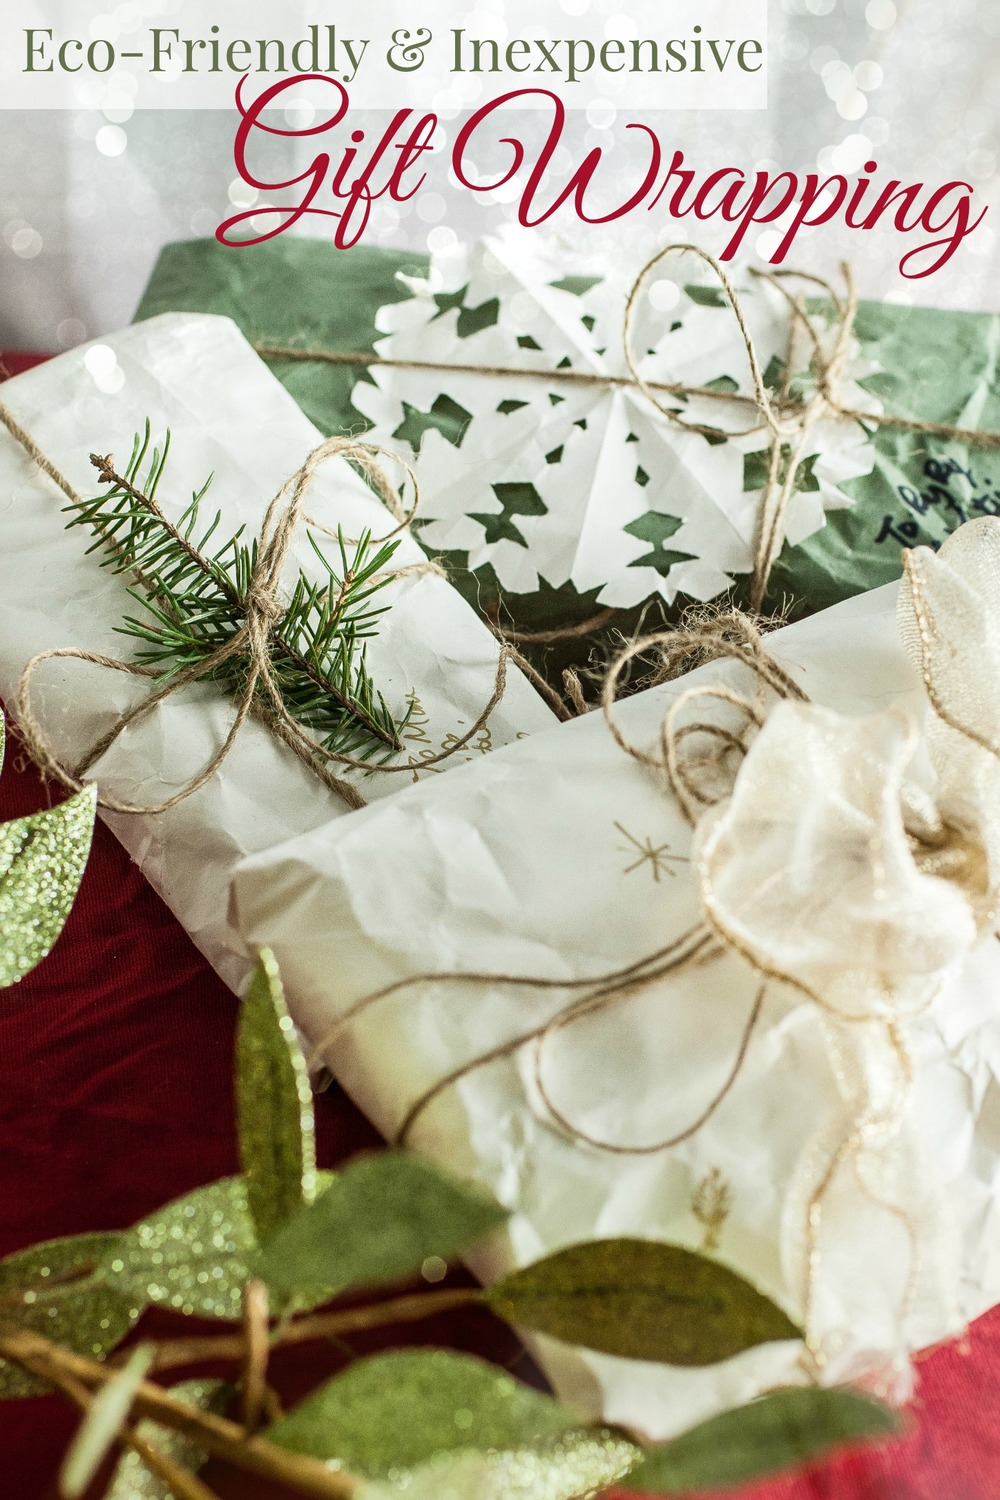 Produce On Parade - Eco-Friendly & Inexpensive Gift Wrapping - No need to buy all that wrapping paper. Here are some great ideas for wrapping gifts on the cheap. Your timeless looking gifts wills stand out!